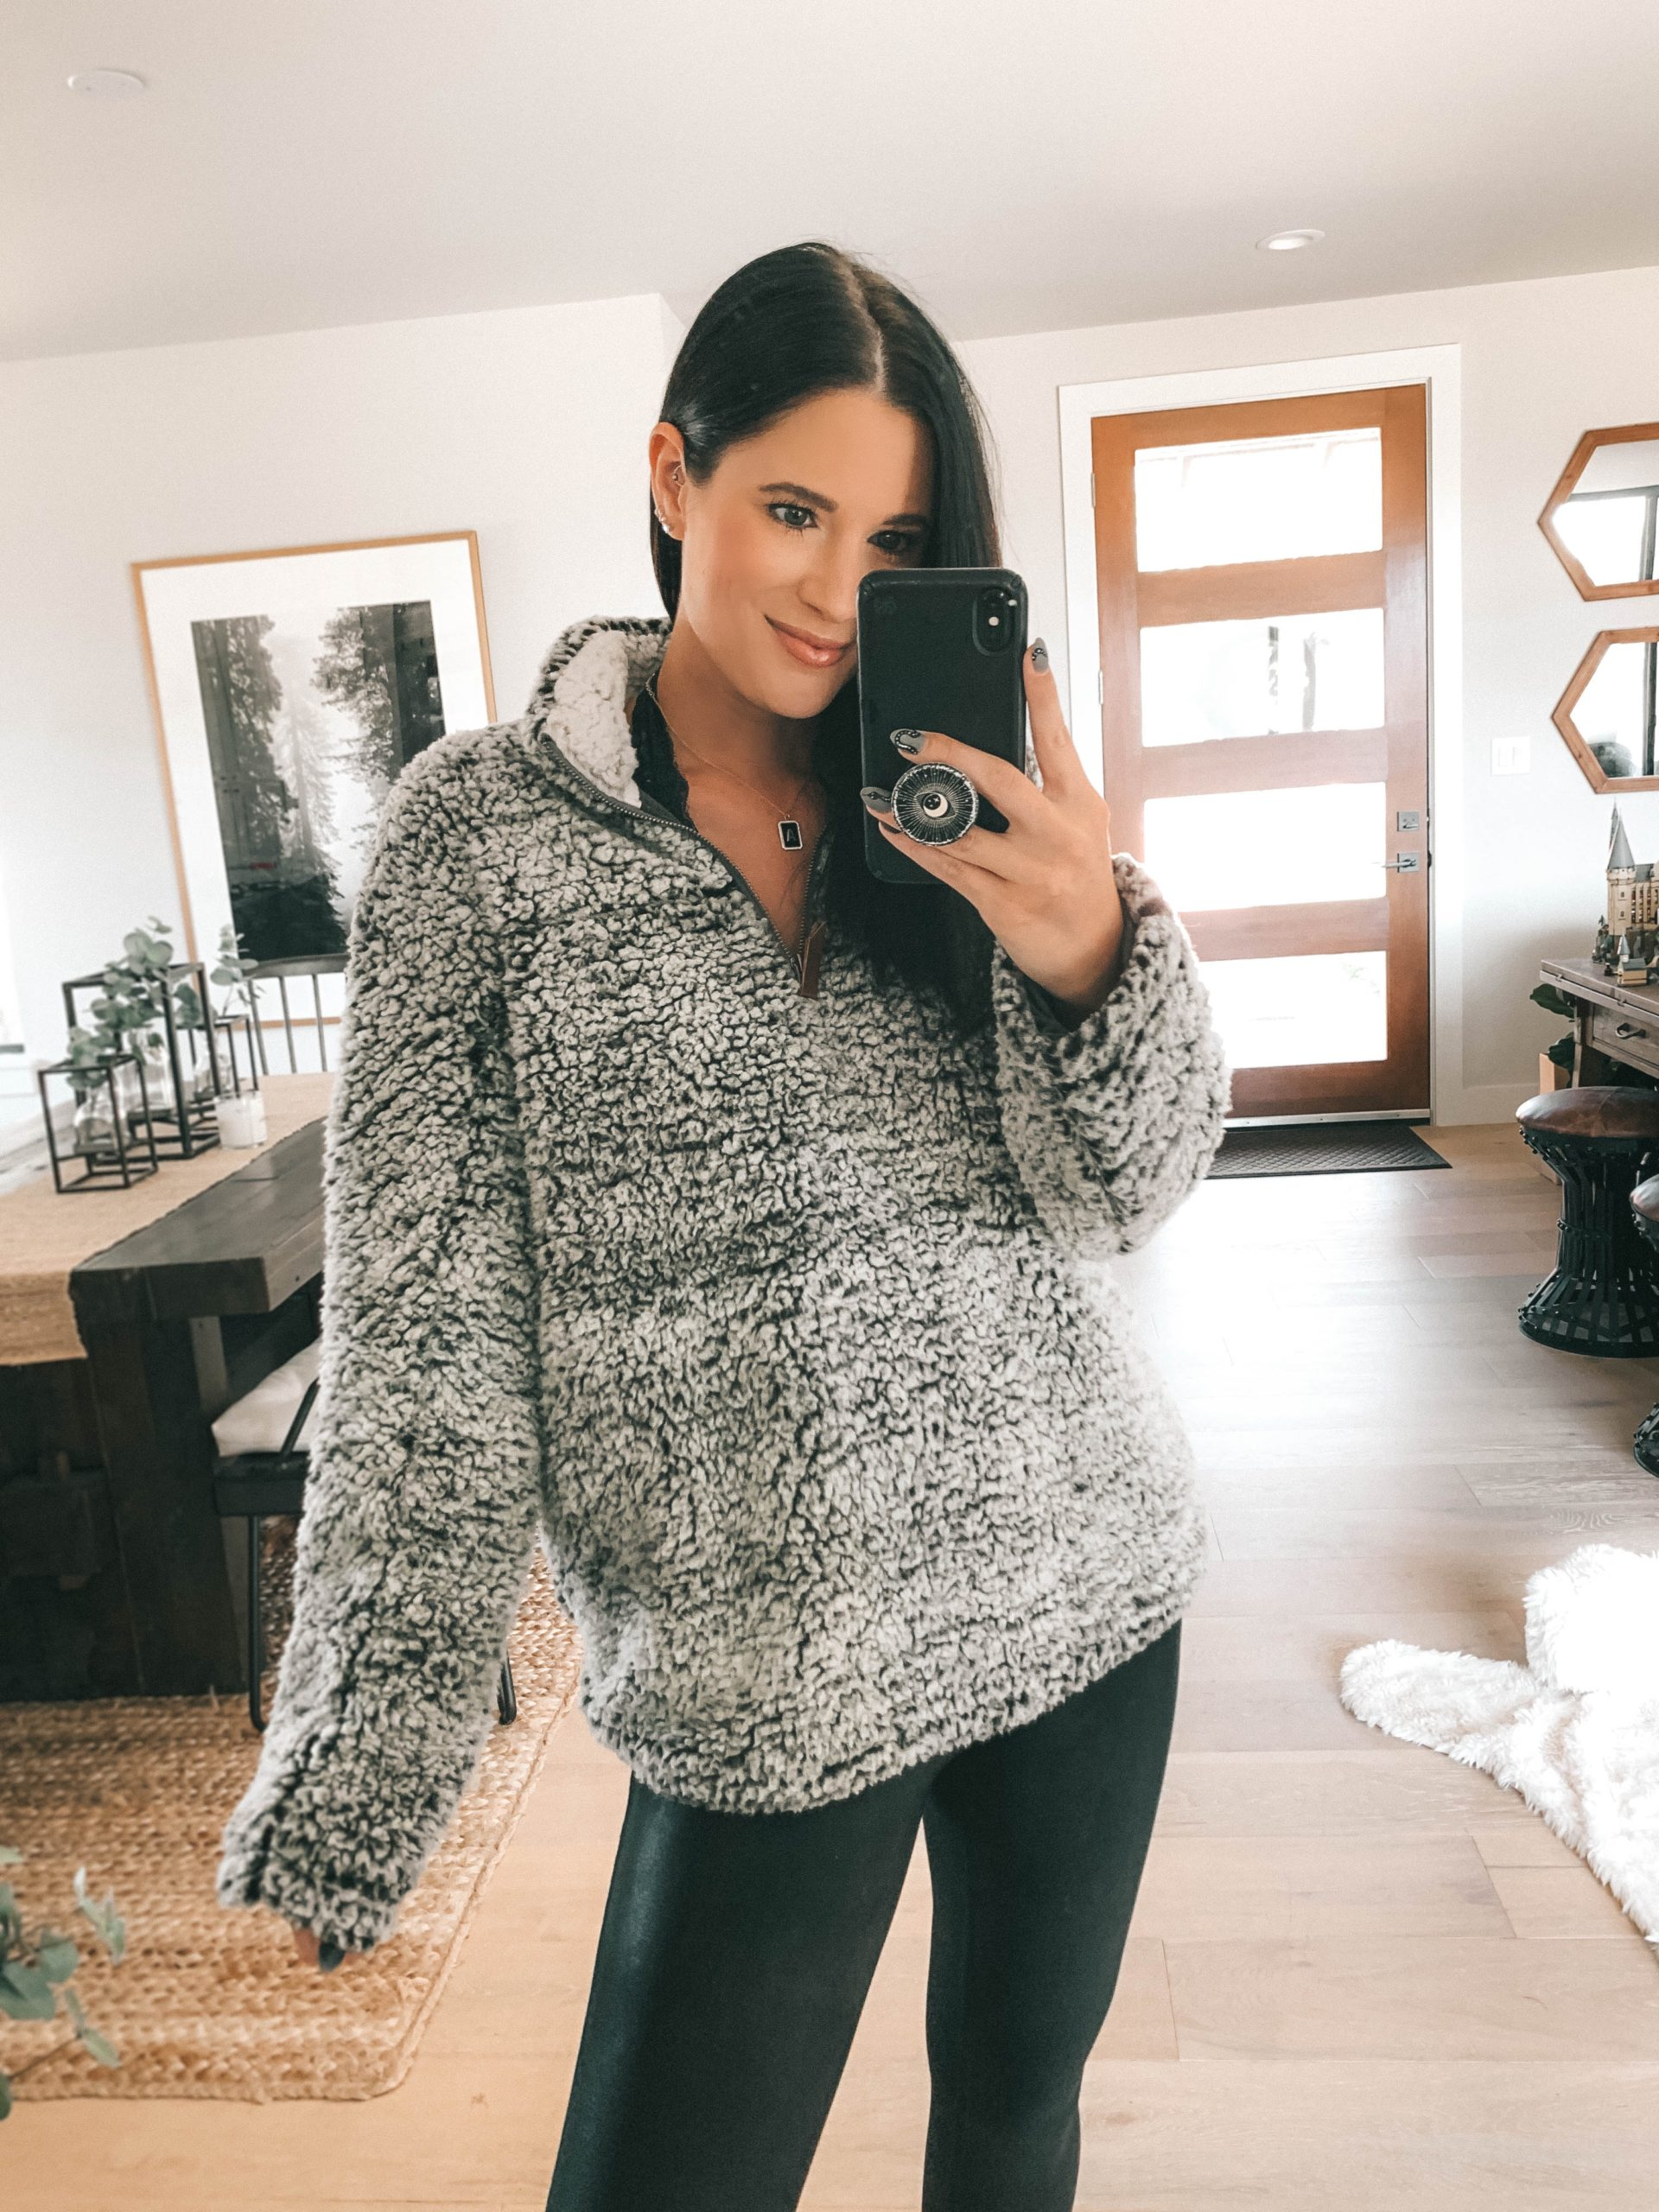 Nordstrom Anniversary Sale by popular Austin fashion blog, Dressed to Kill: image of a woman wearing a Nordstrom Wubby Fleece Pullover THREAD & SUPPLY and Nordstrom Faux Leather Leggings SPANX.